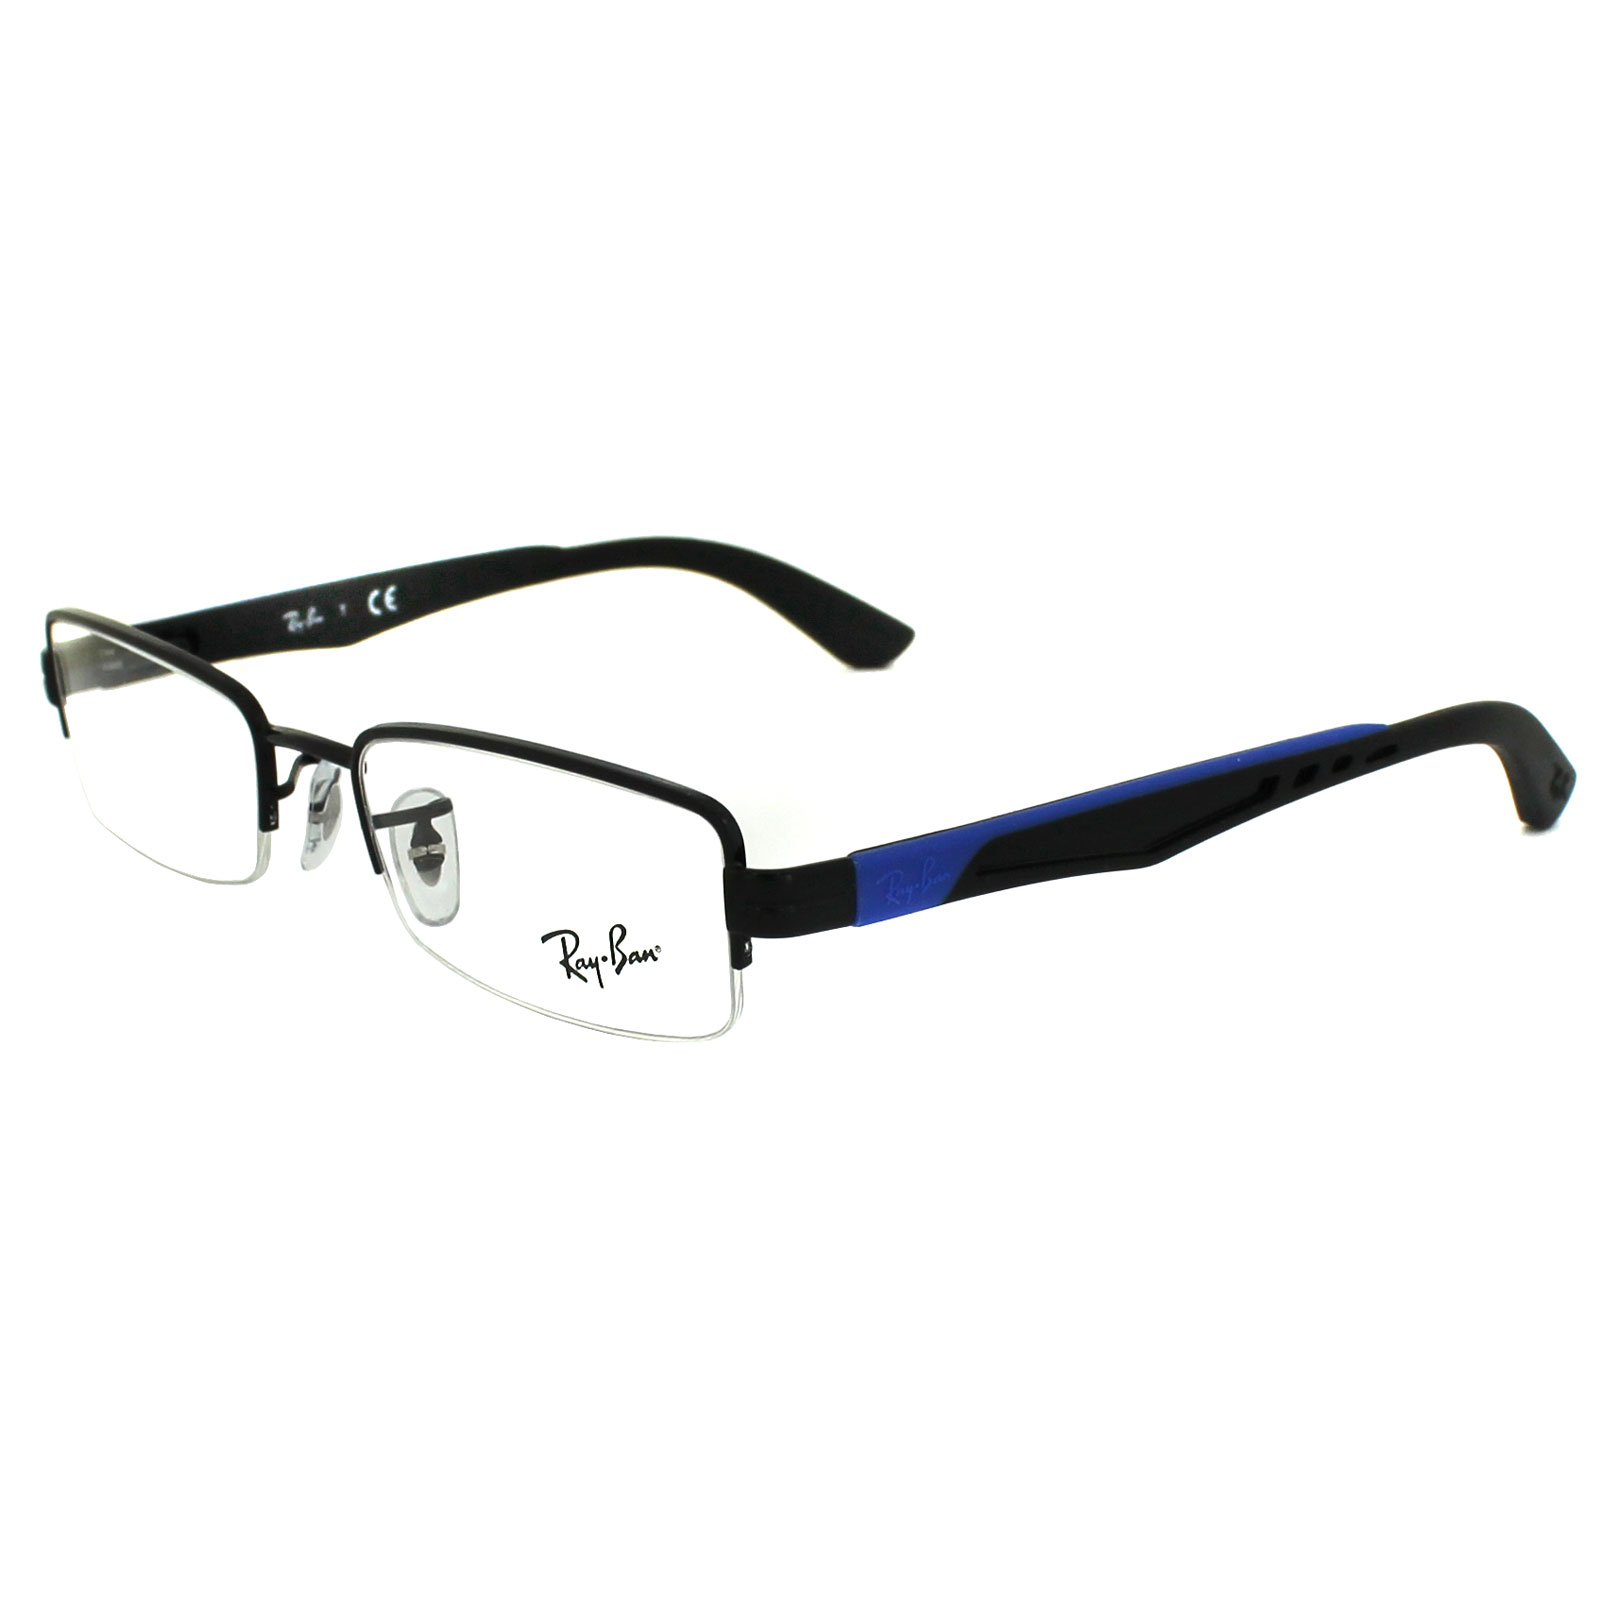 Blue Black Glasses Frames : Ray-Ban Glasses Frames 6264 2509 Black Blue 49mm eBay